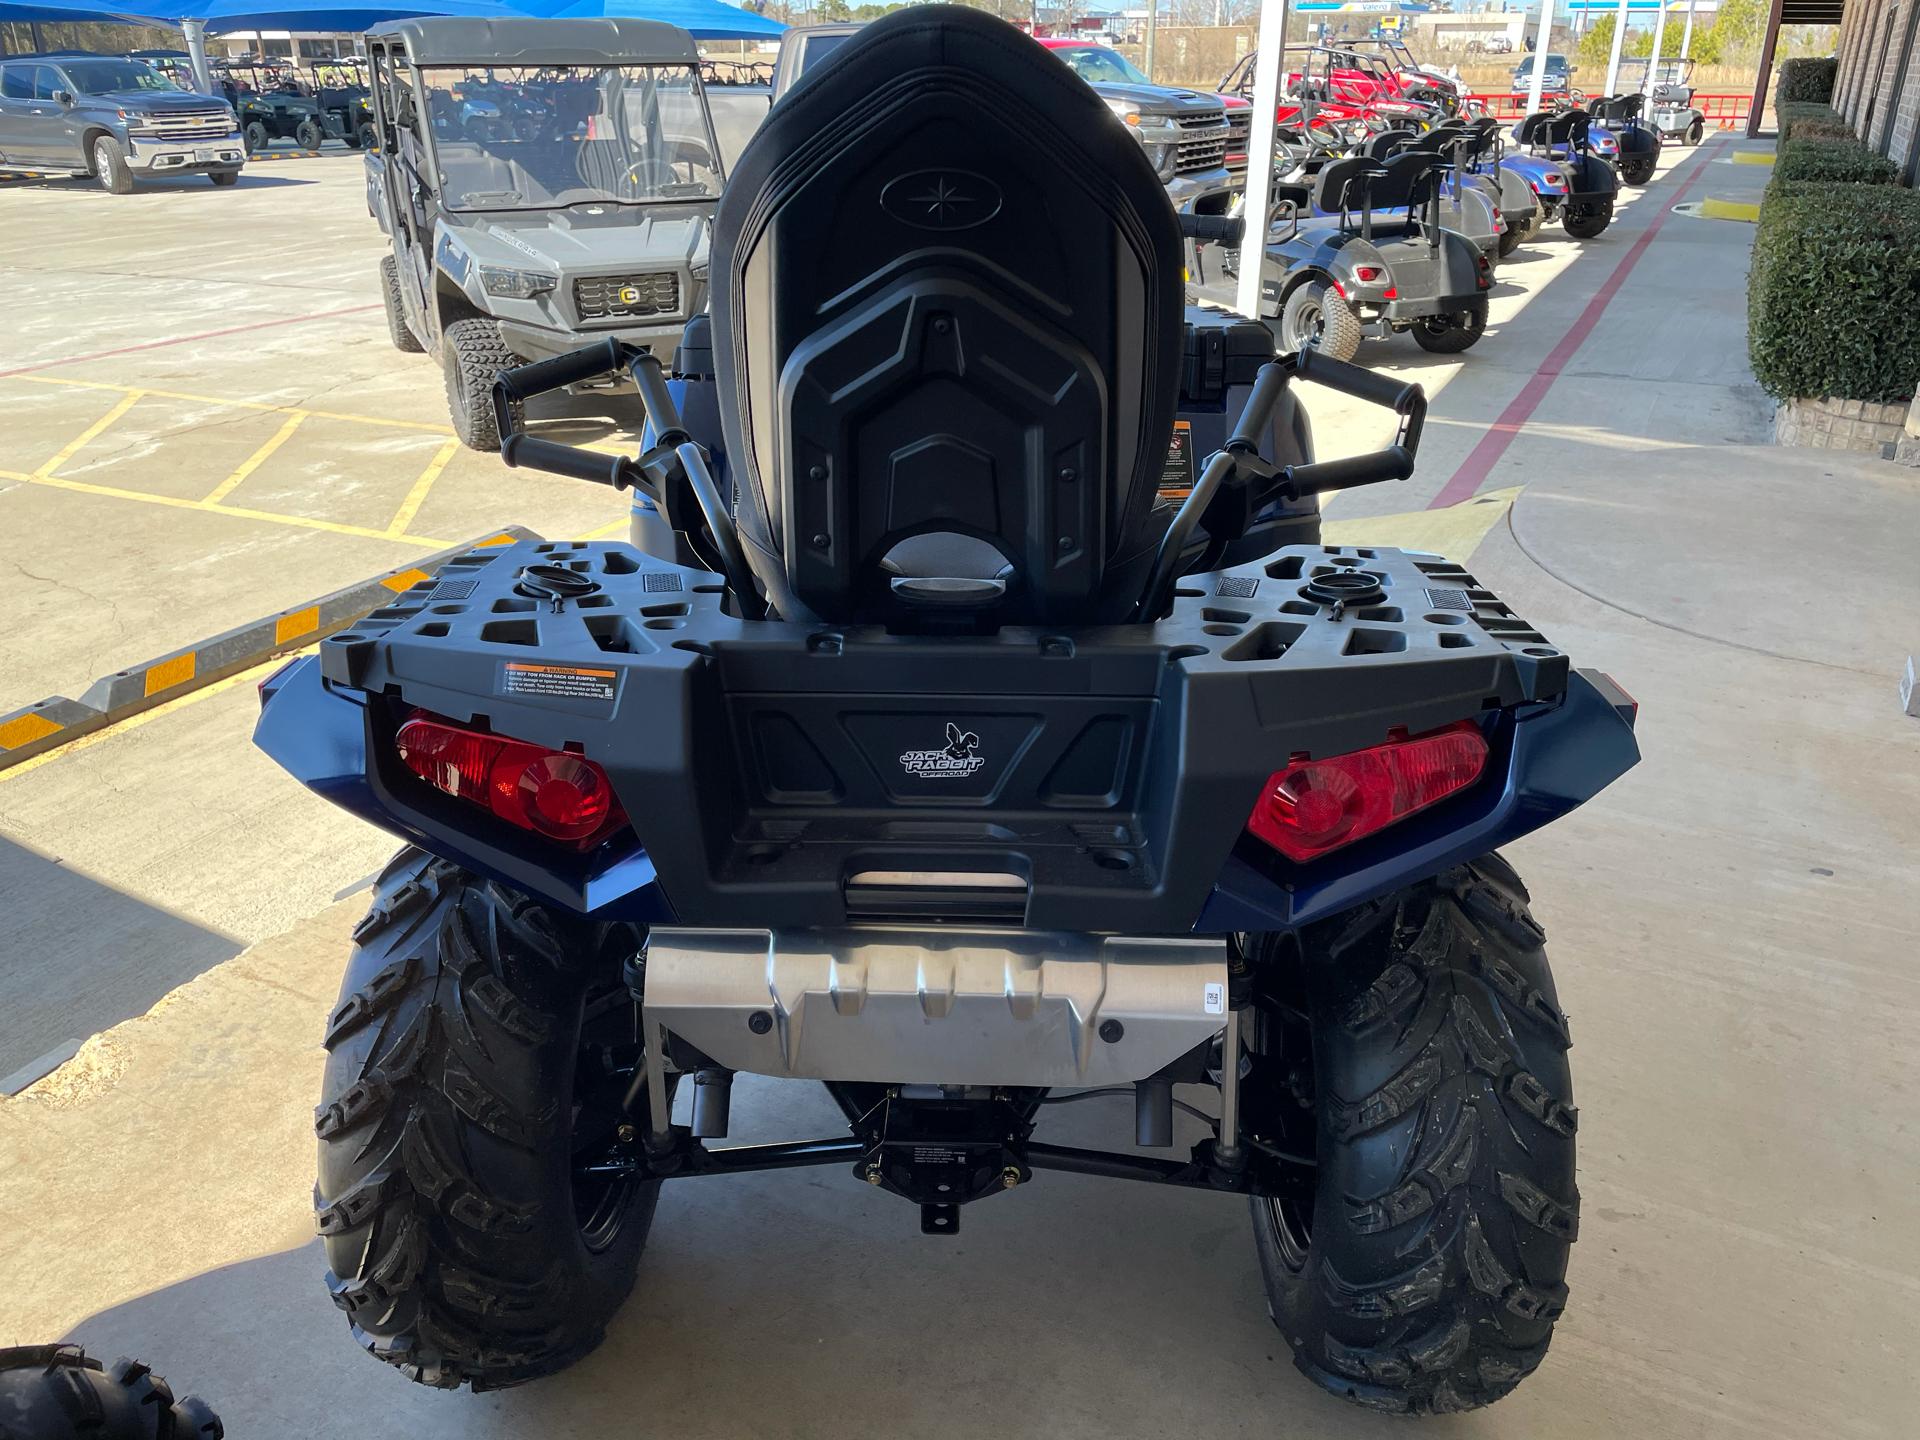 2021 Polaris Sportsman Touring 850 in Marshall, Texas - Photo 5